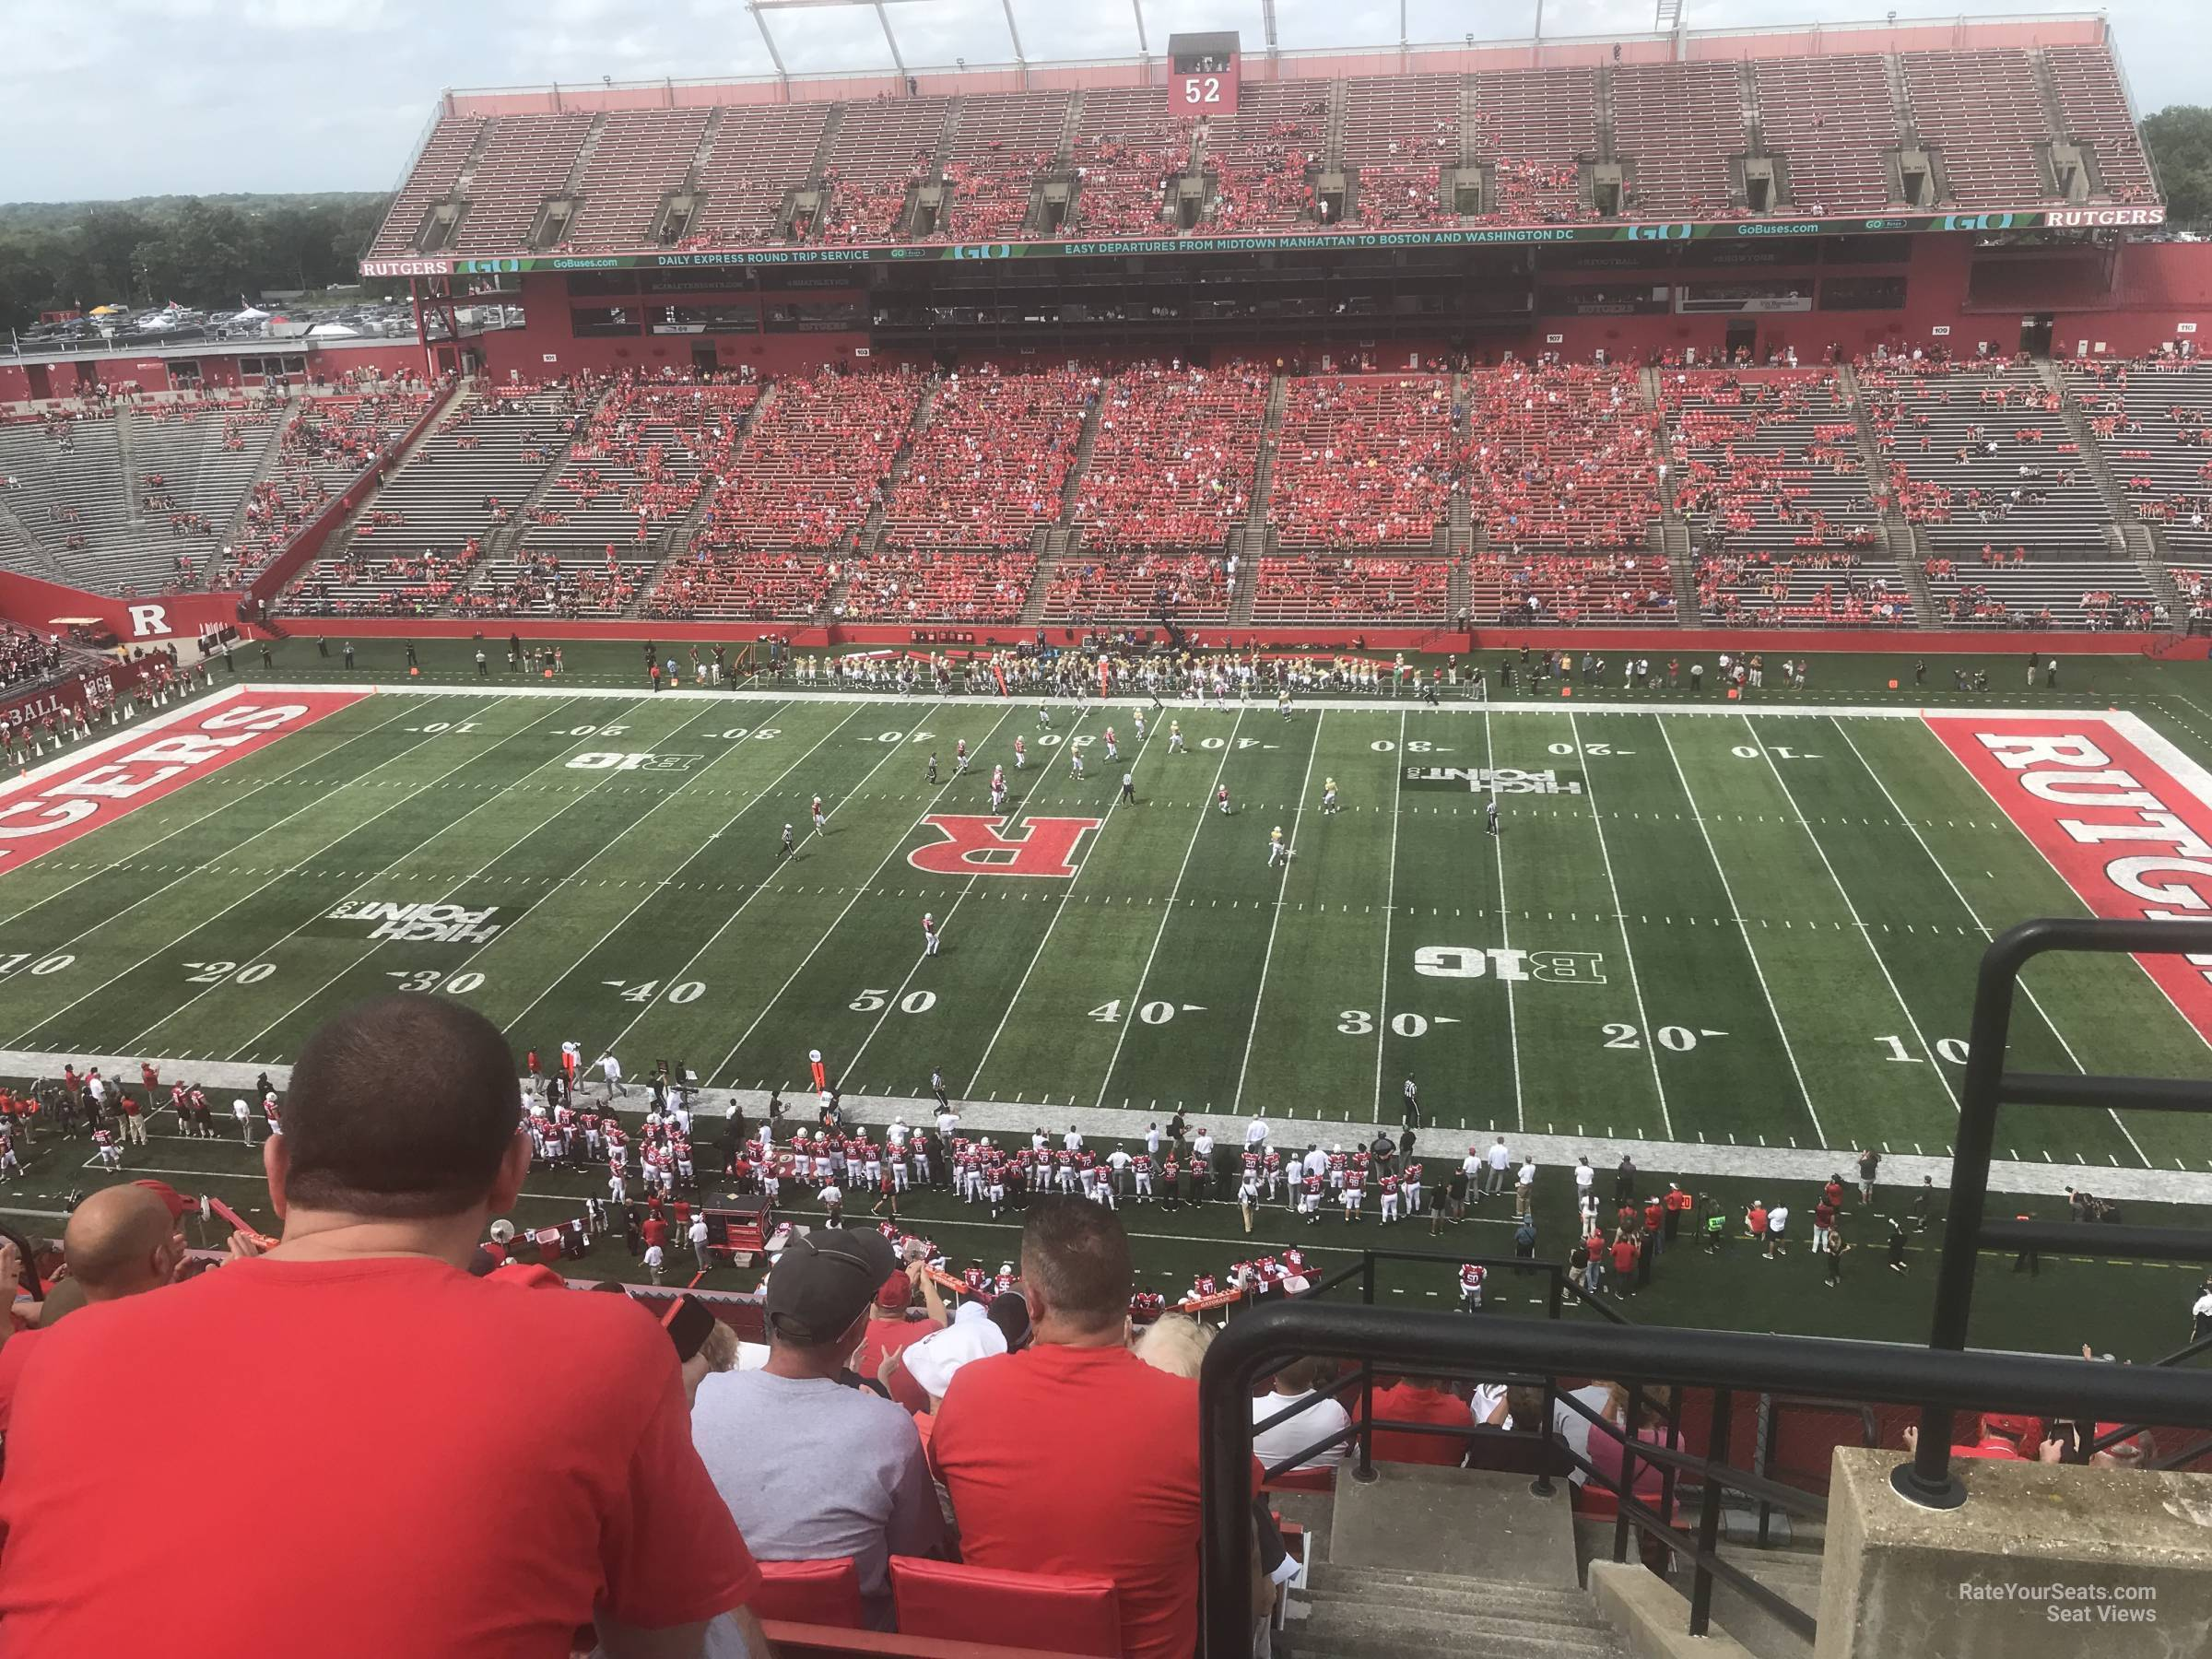 Seat View for High Point Solutions Stadium Section 206, Row 10